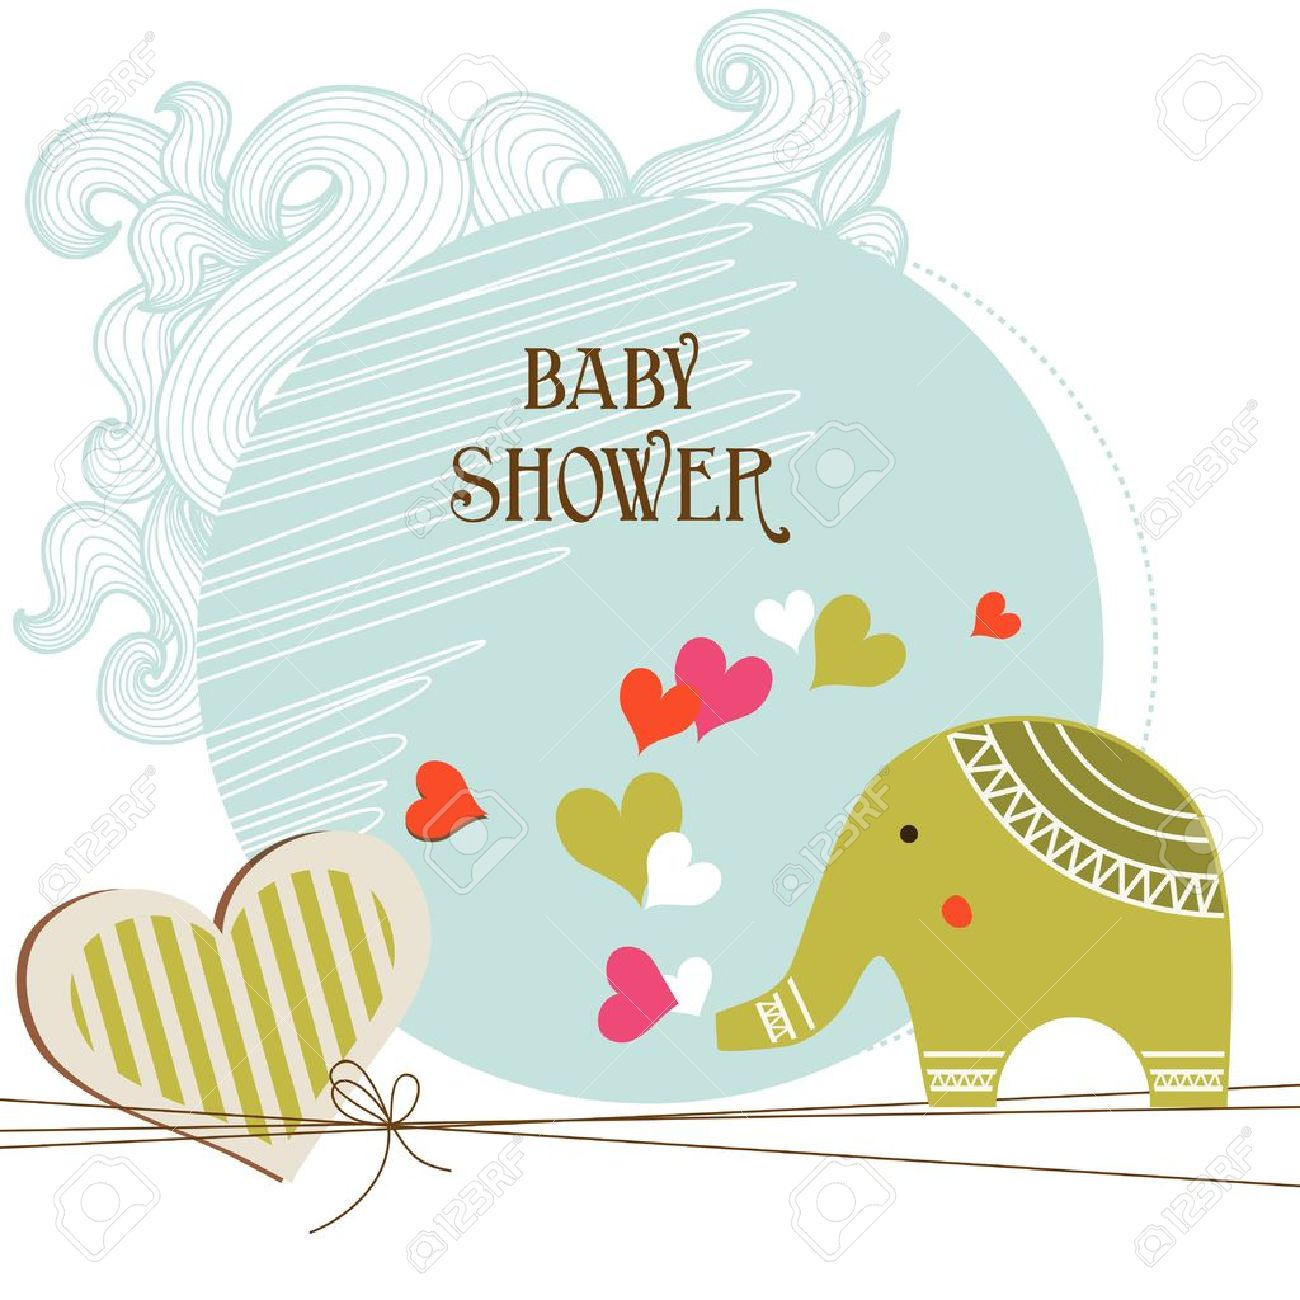 Baby Shower Card Template Royalty Free Cliparts, Vectors, And ...